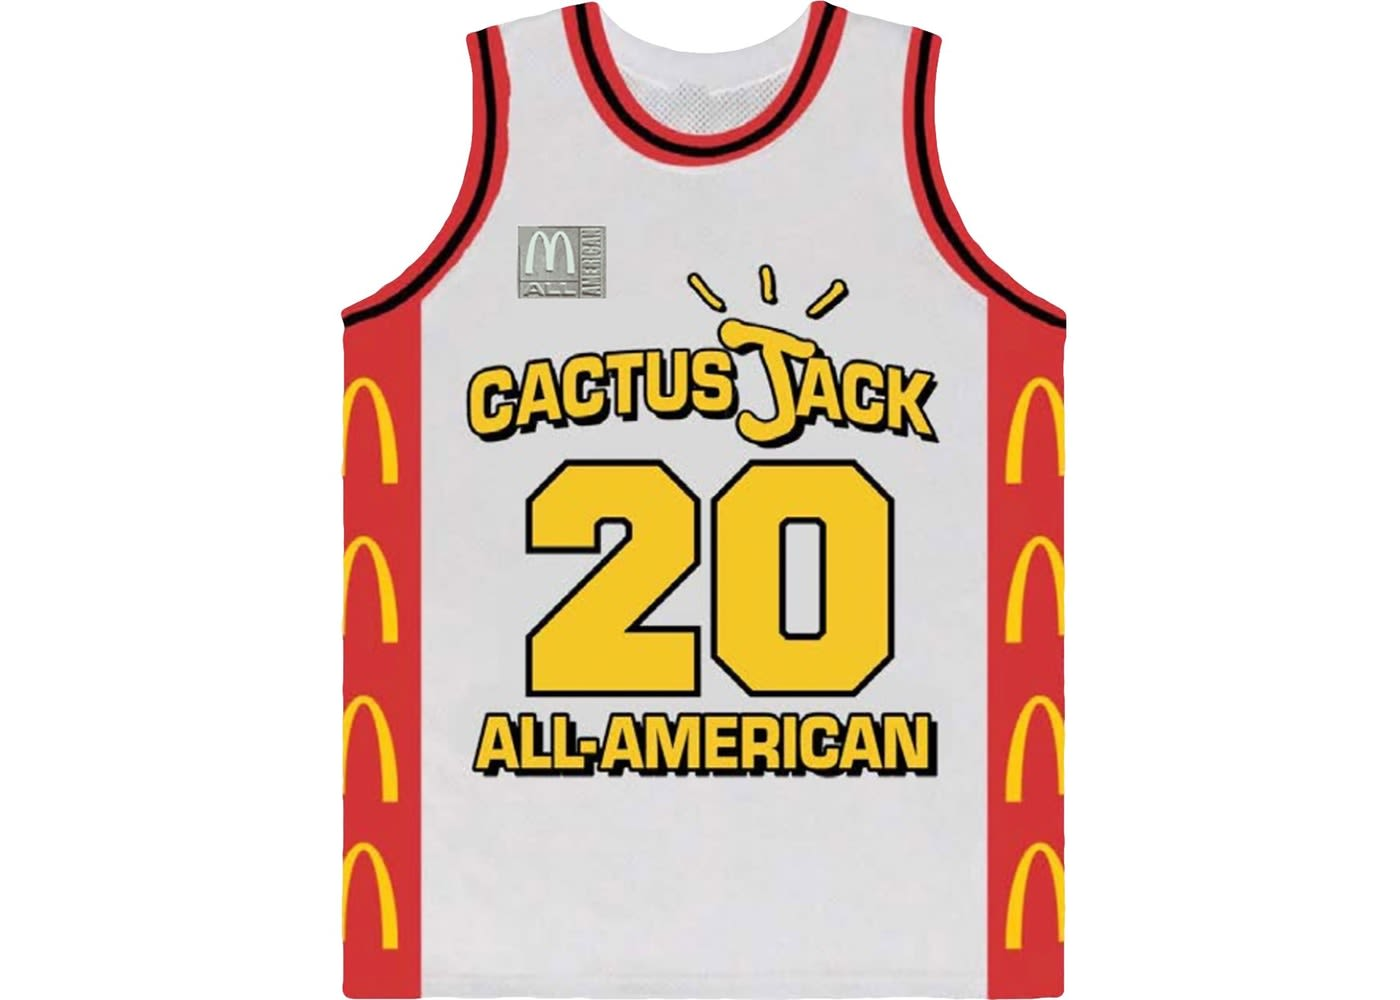 Cactus Jack All American Basketball Jersey